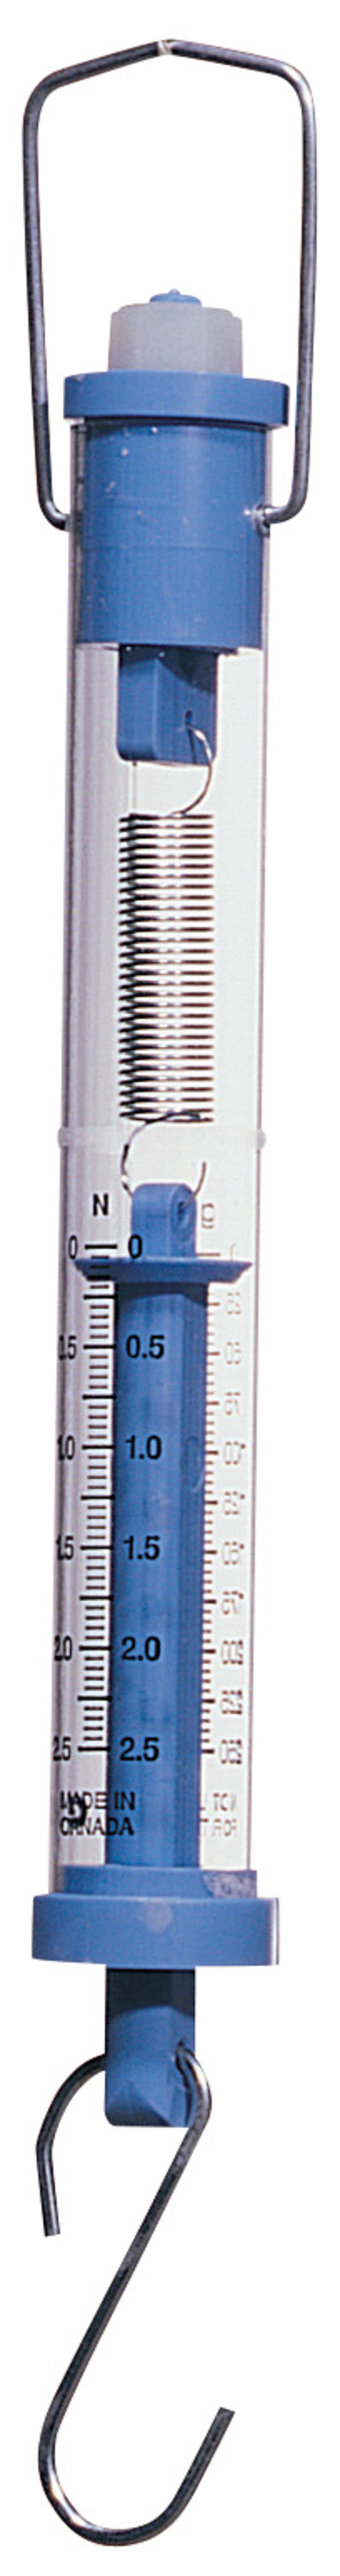 Measuring Tools, Scales, Balances Supplies, Item Number 190-7377